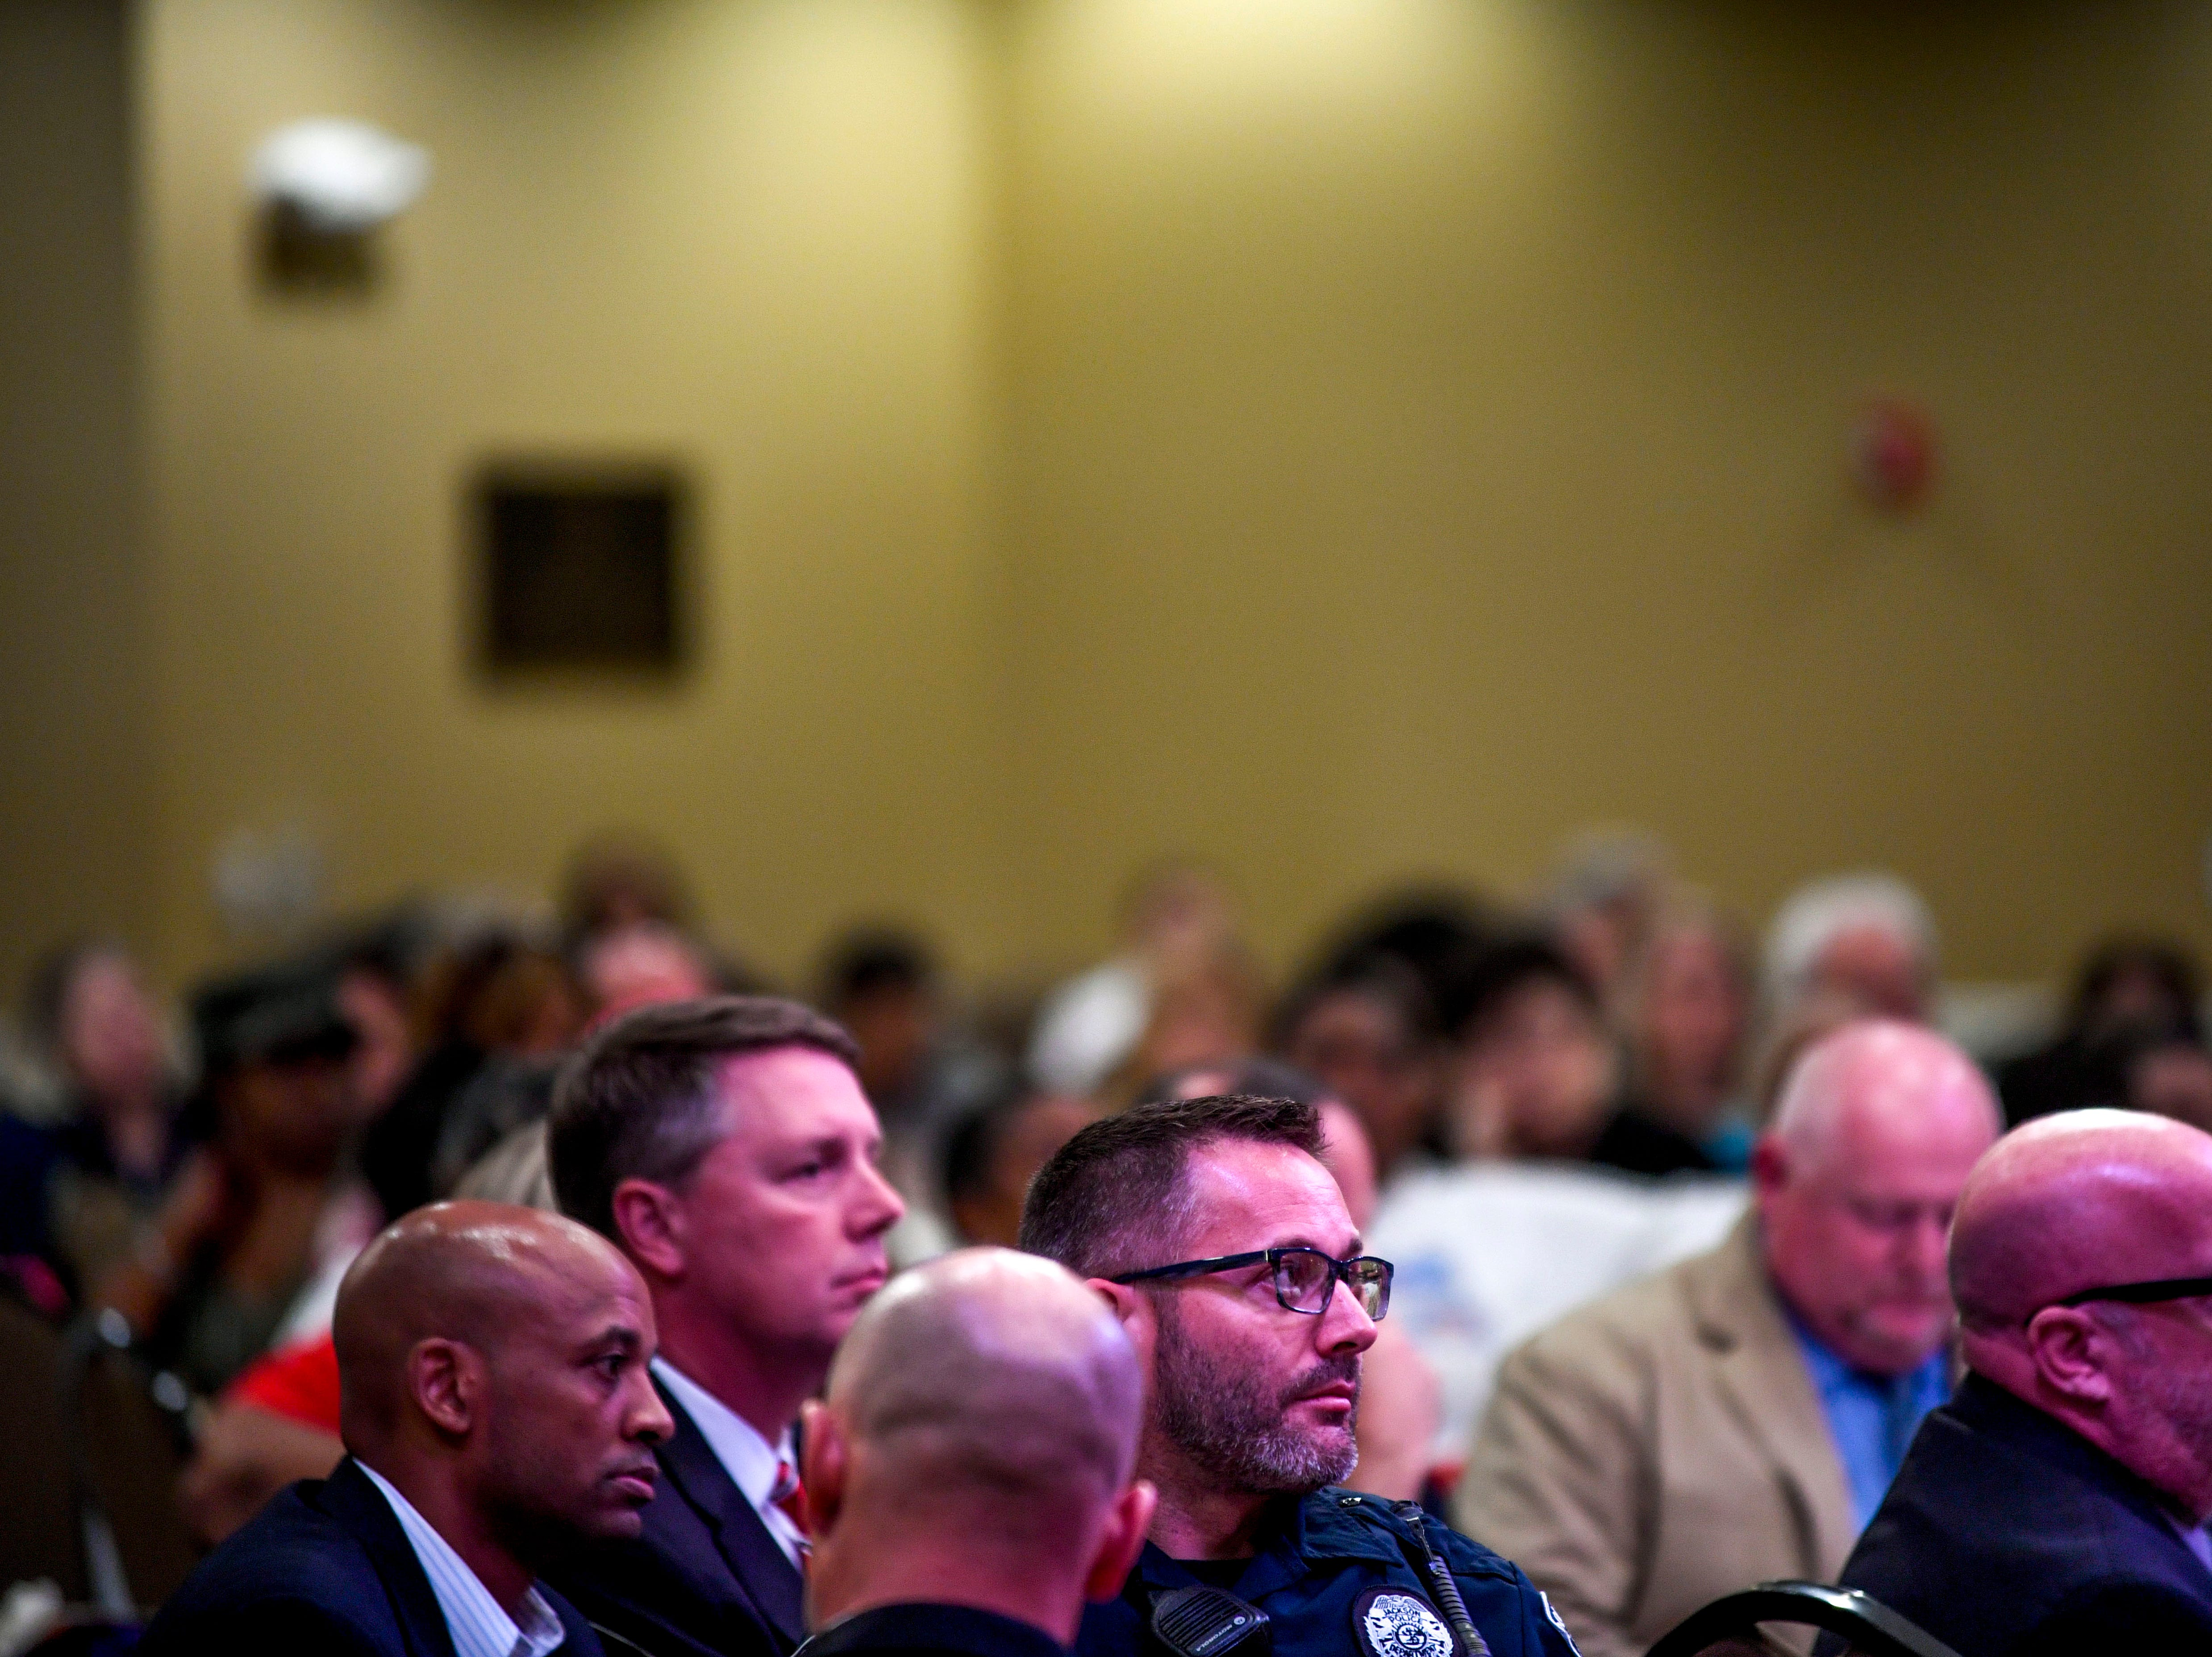 Officers from the Jackson Police Department listen to speakers during the annual Remember Me Walk hosted at Union University in Jackson, Tenn., on Monday, Oct. 1, 2018.